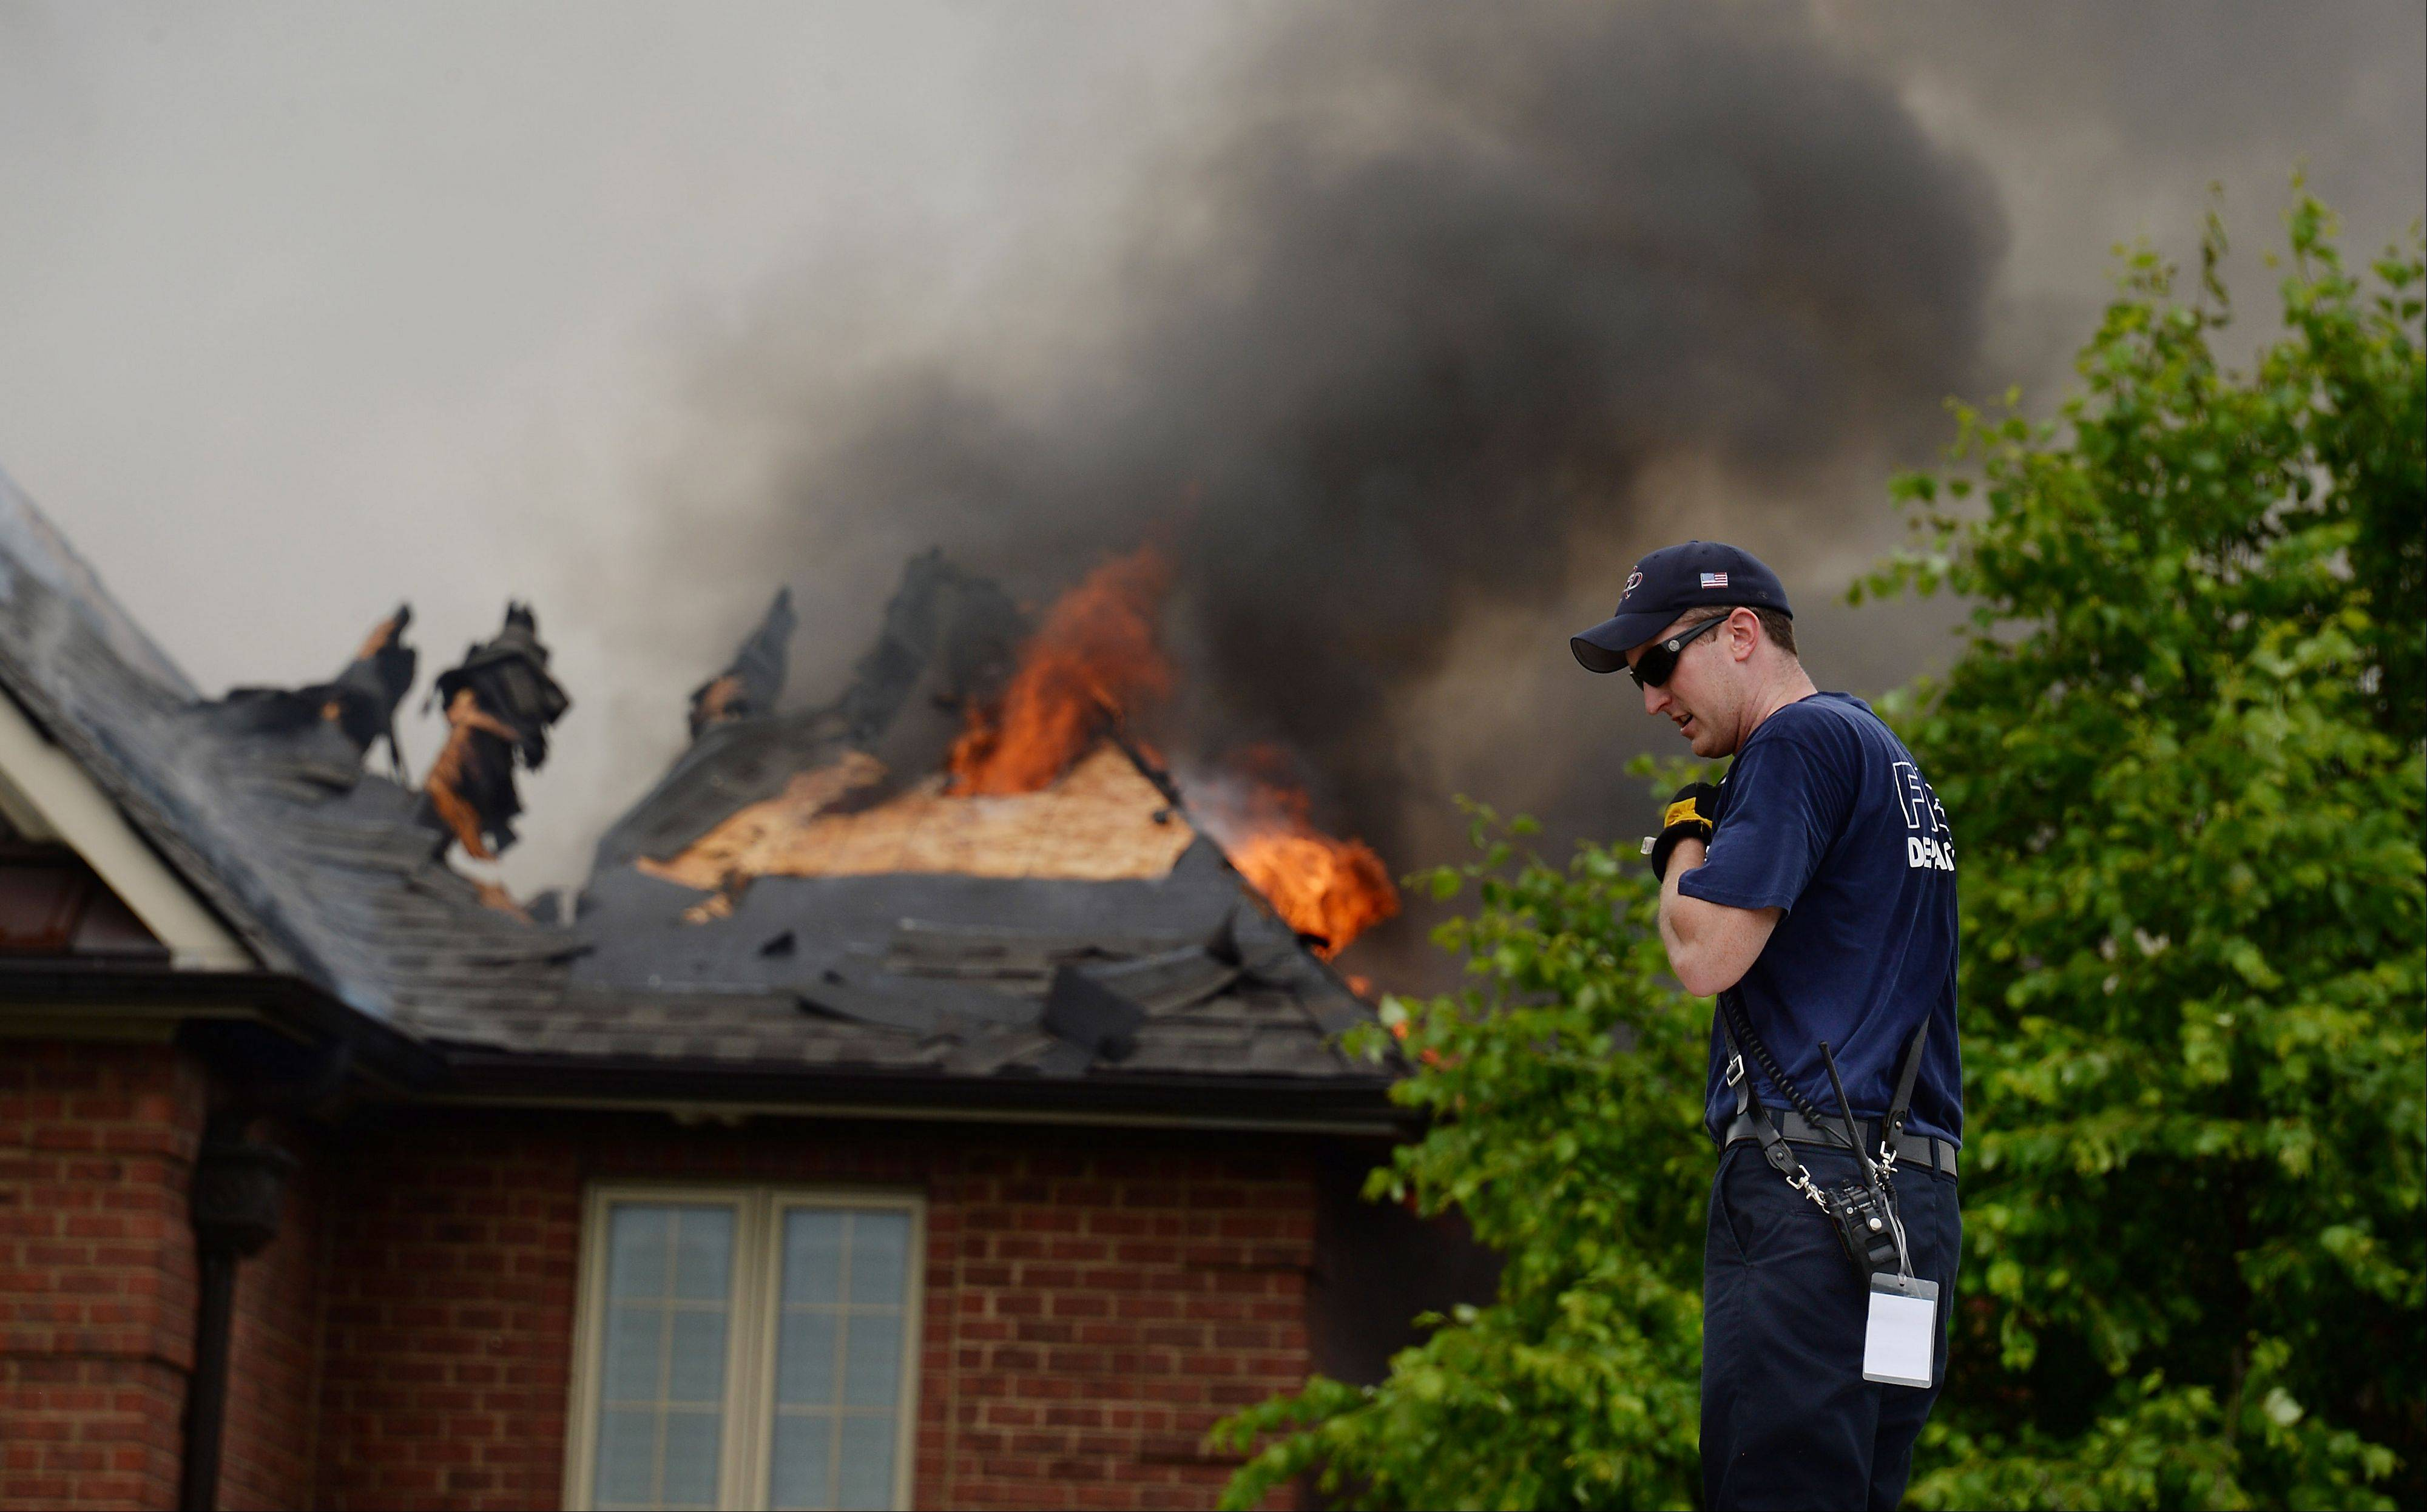 Firefighters from a dozen neighboring fire departments converge on South Barrington to help.